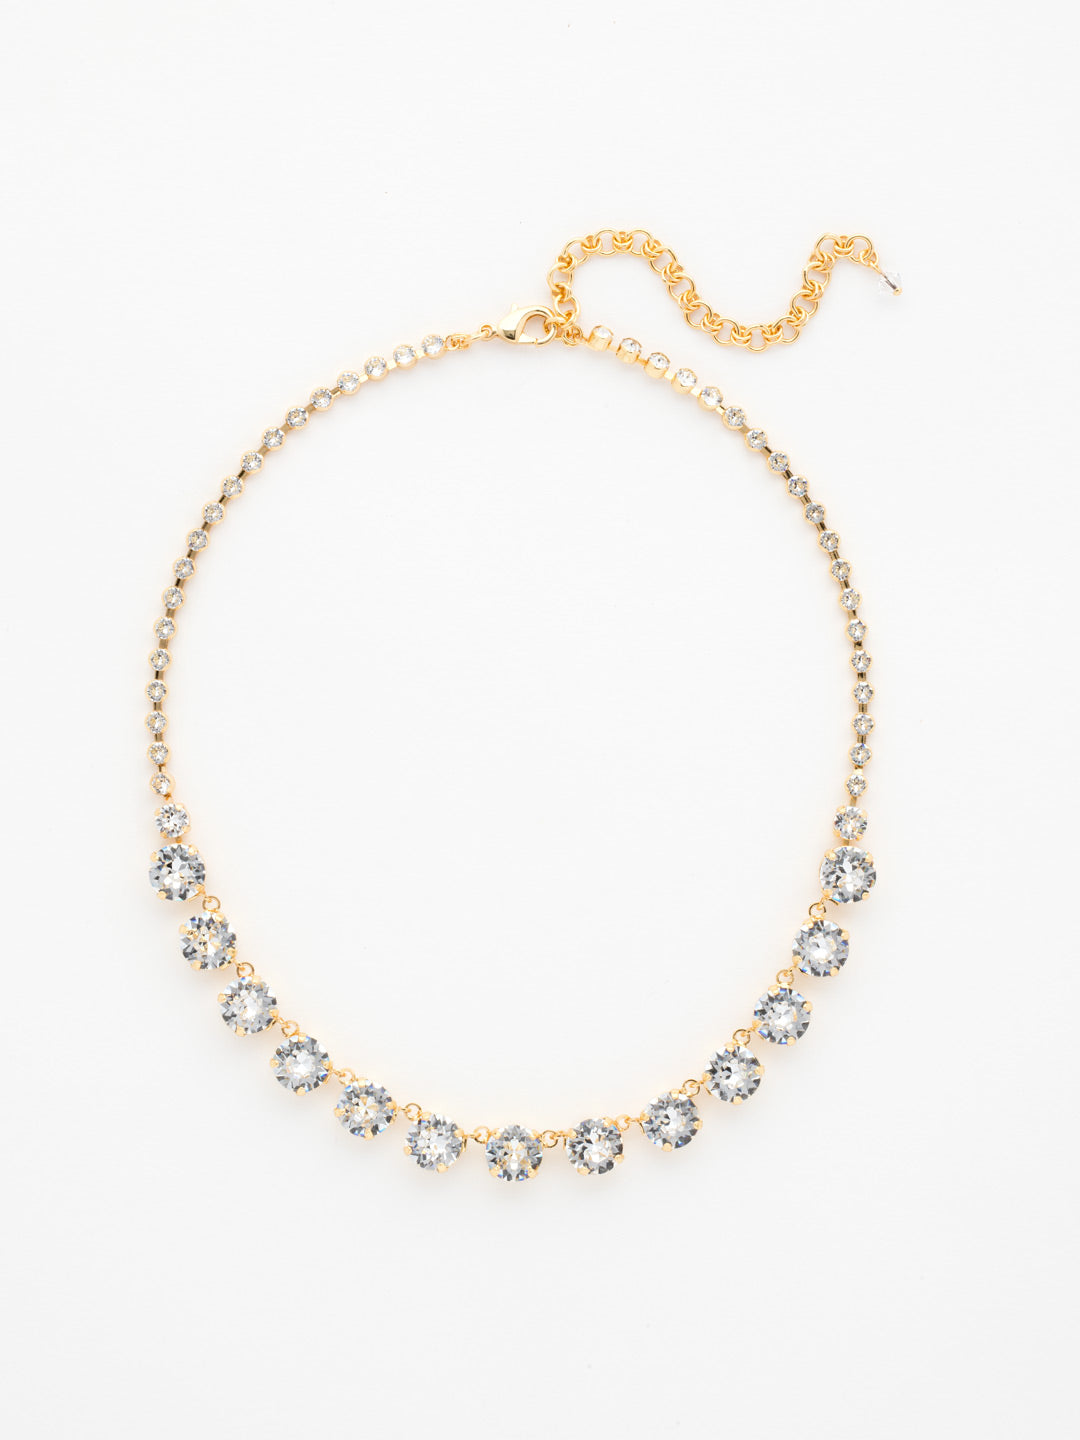 Repeating Rivoli Classic Line Necklace - NCU19BGCRY